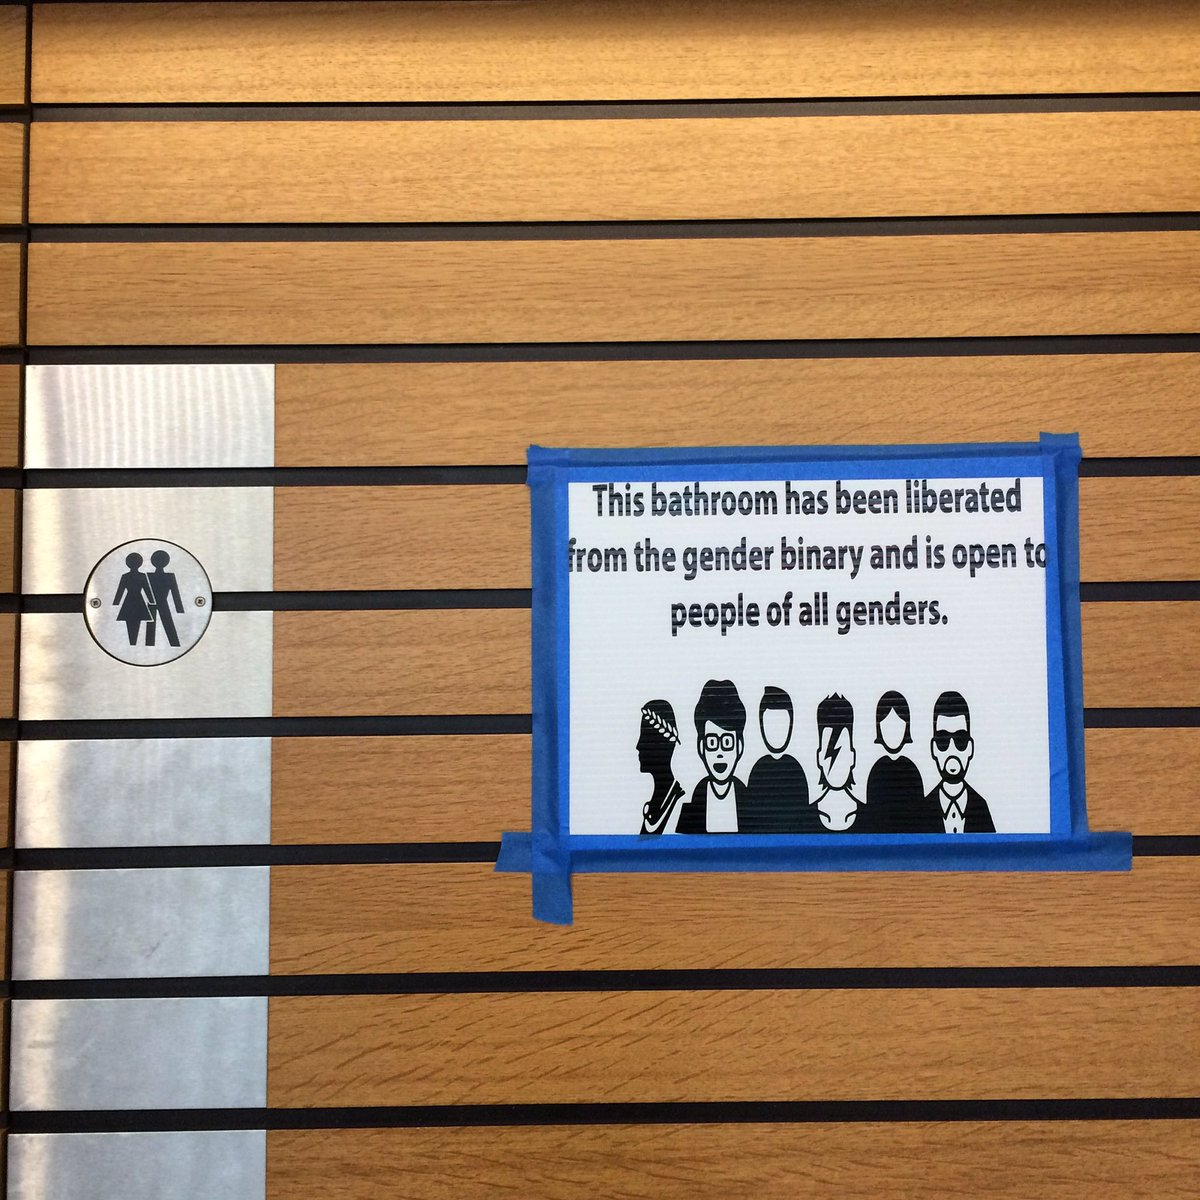 "A sign taped to a bathroom door saying ""This bathroom has been liberated from the gender binary and is open to people of all genders"", with an illustration of different people below the text."